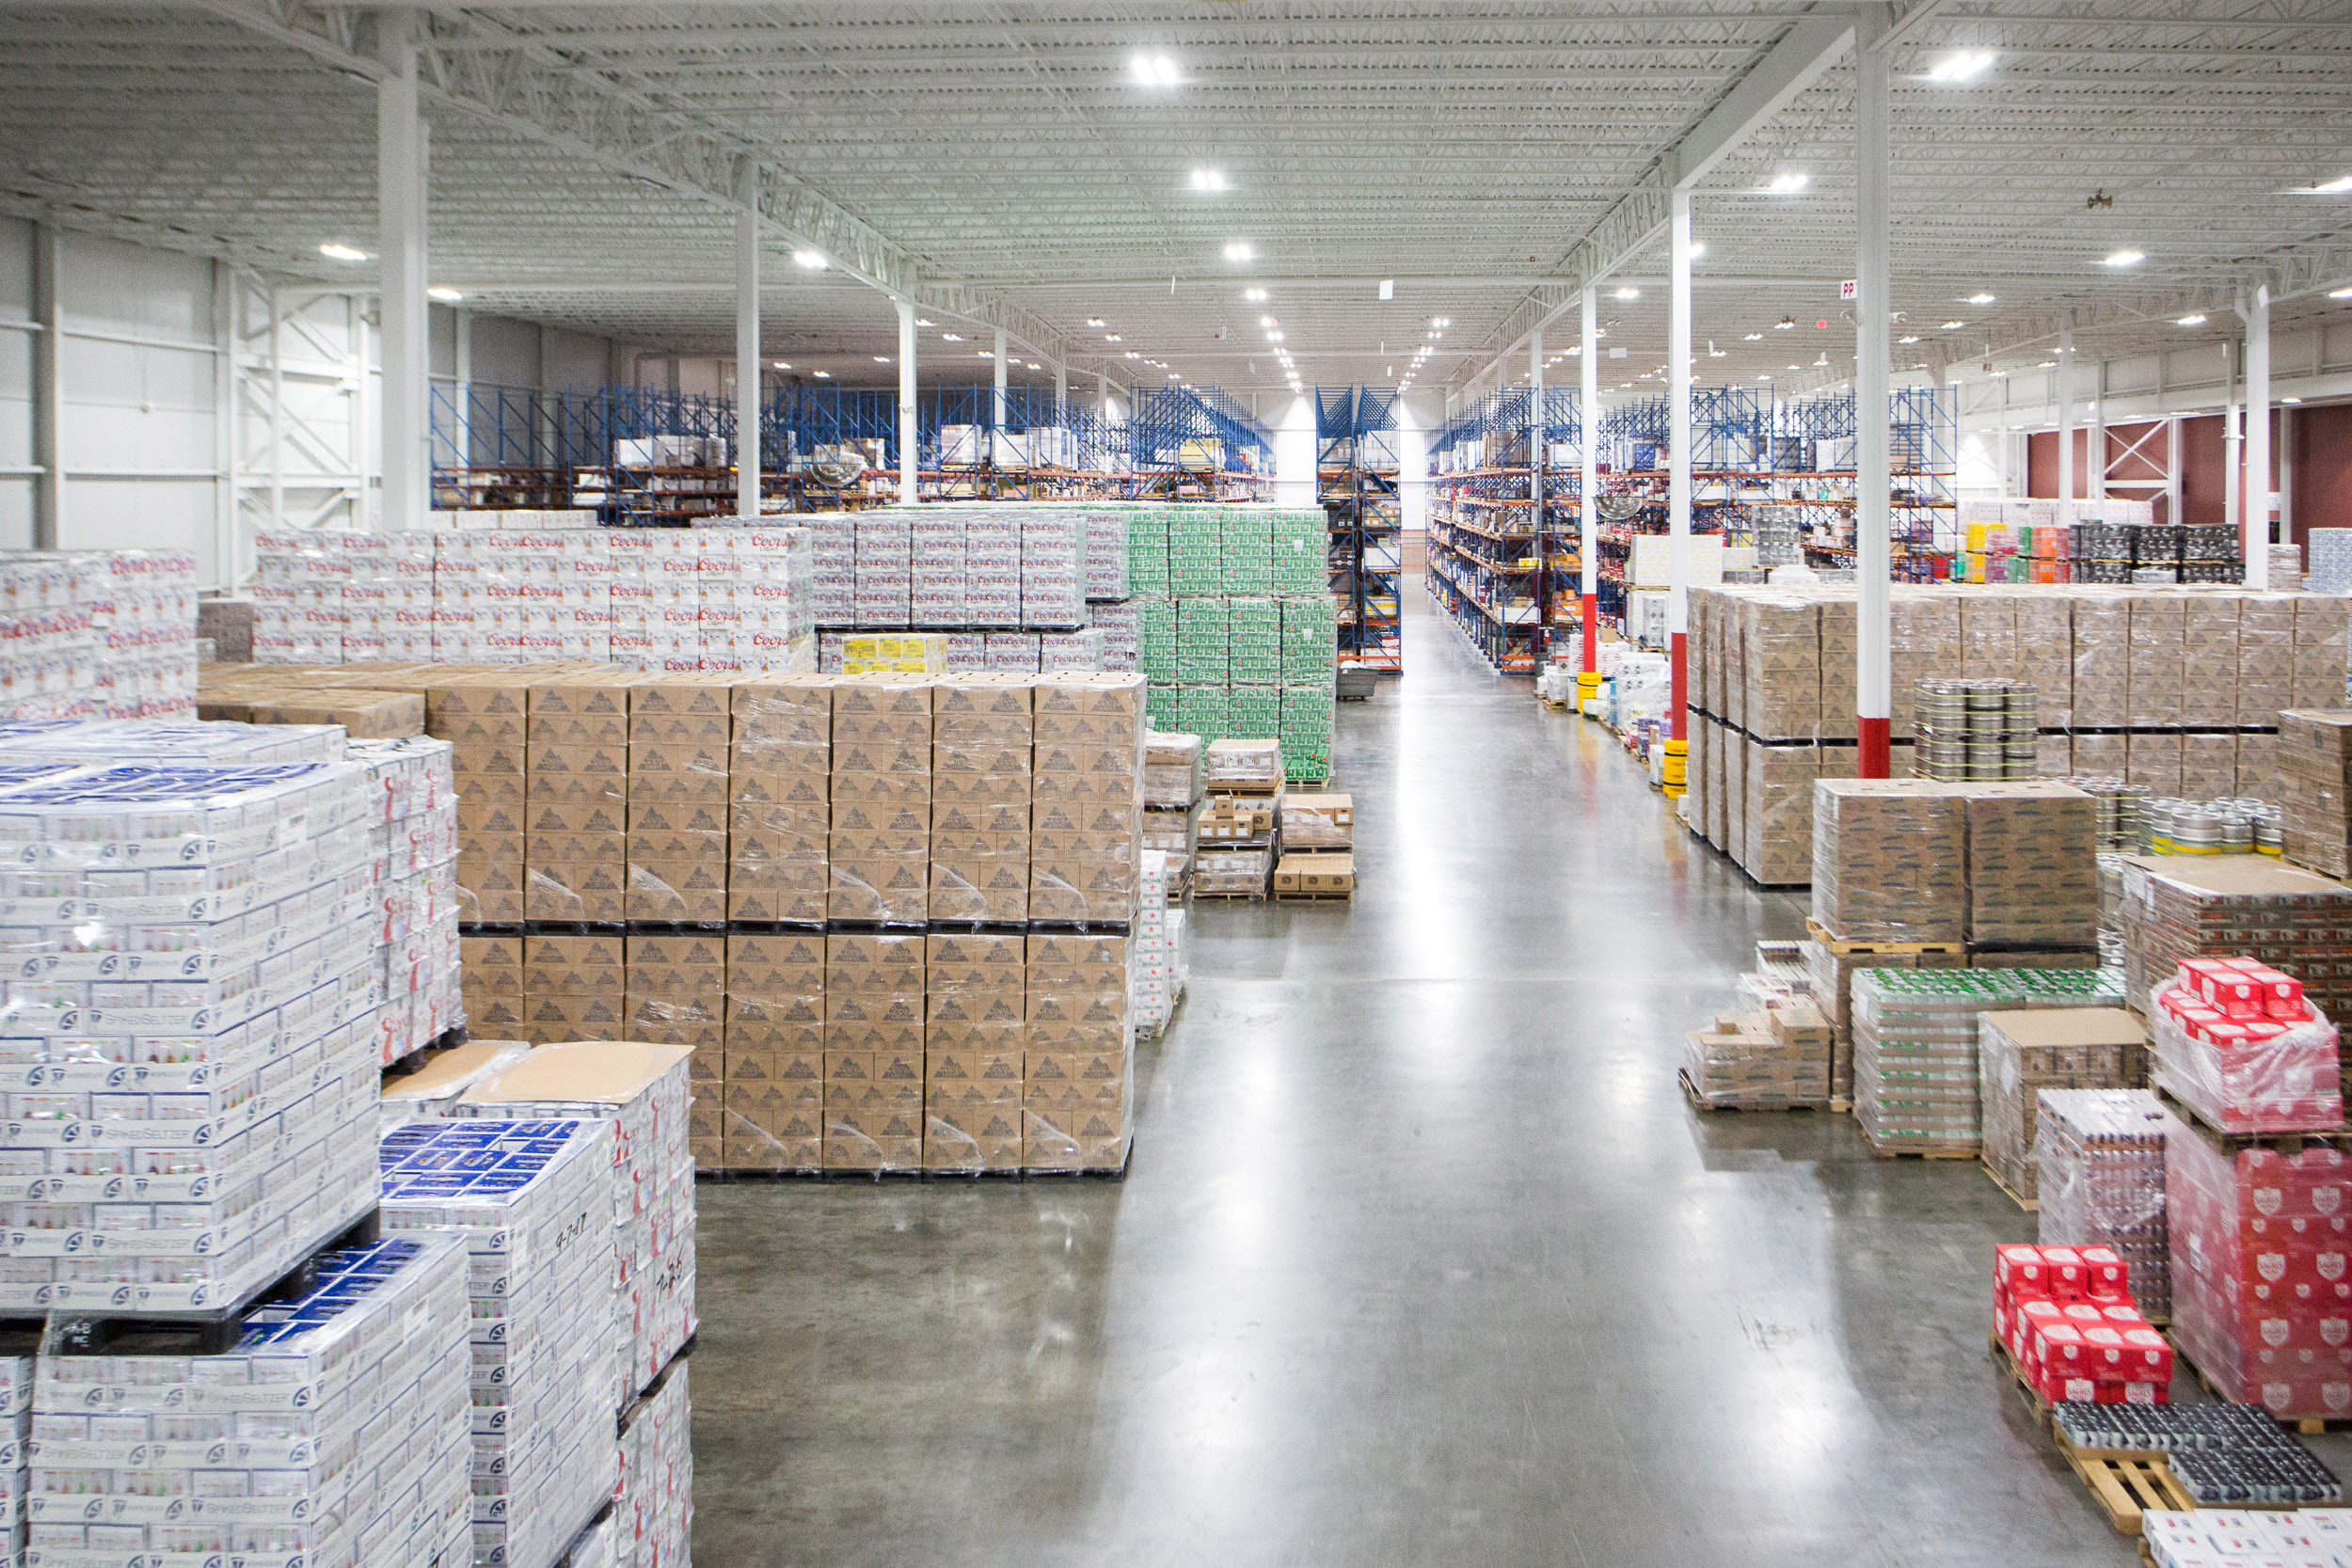 WAREHOUSE AND INDUSTRIAL PHOTOGRAPHY